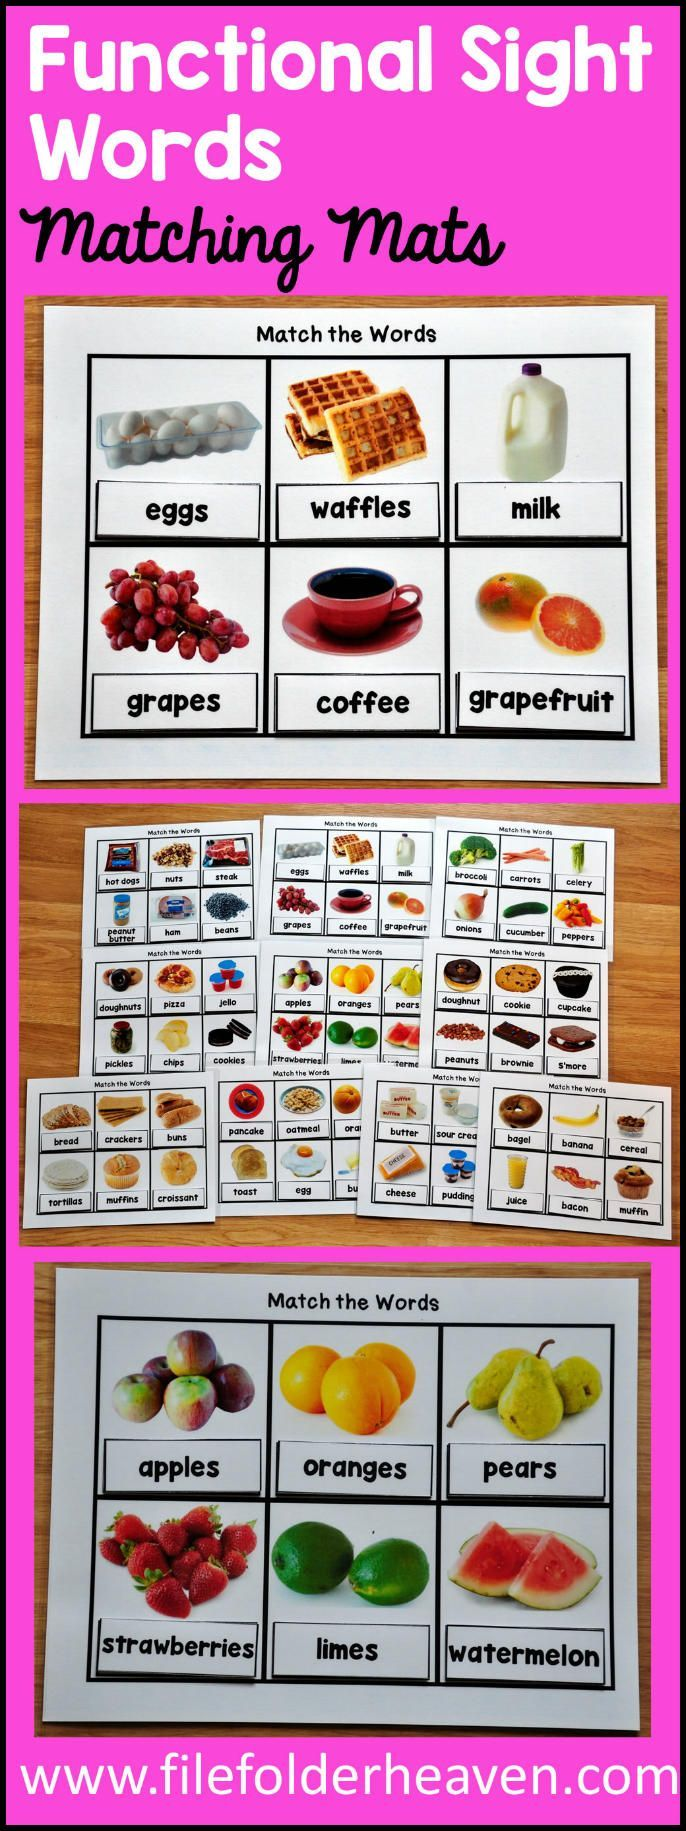 Grocery Words Stunning These Functional Sight Words Matching Mats Provide A Versatile Way .